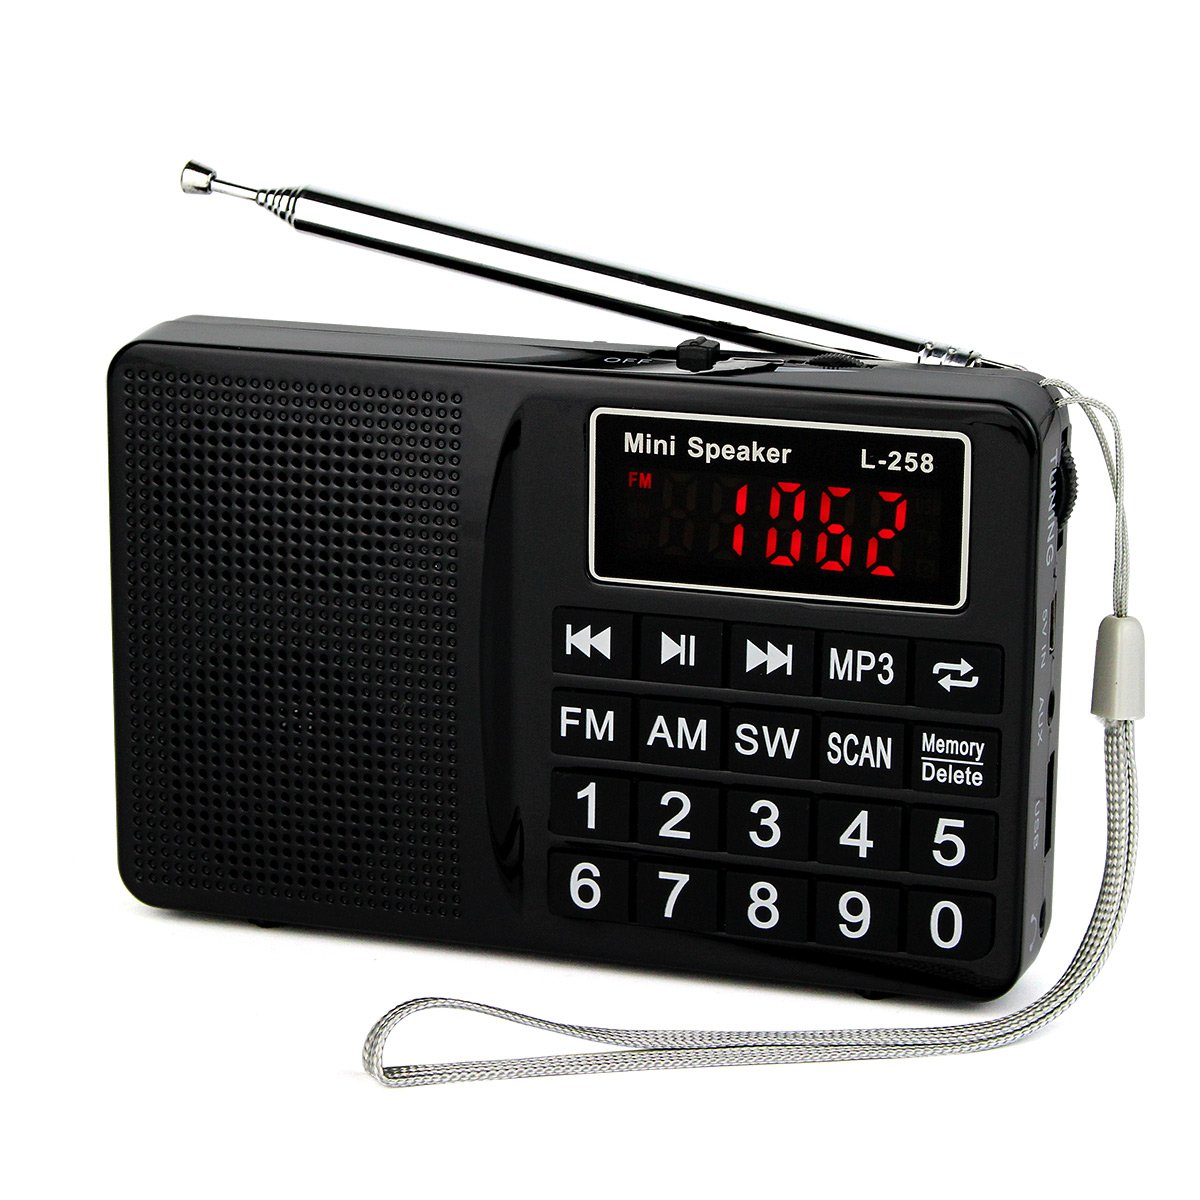 TIVDIO L-258 Portable Digital Shortwave Transistor Radio with AM FM Micro-SD Card AUX Input MP3 Player Speaker(Black)